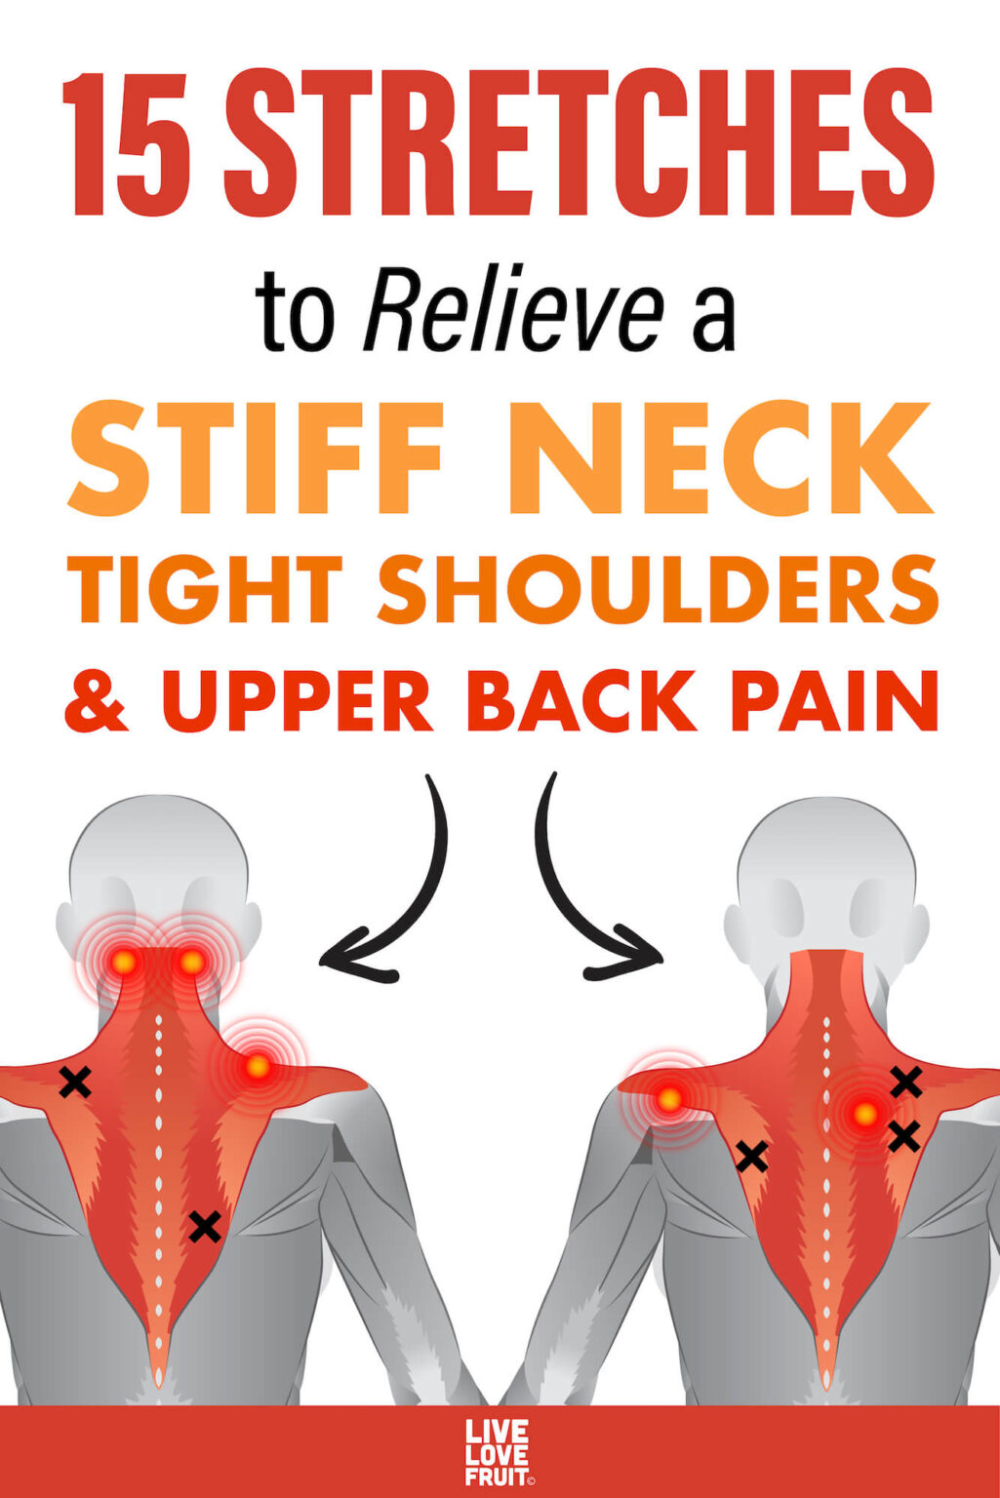 15 Stretches to Relieve a Stiff Neck, Tight Should